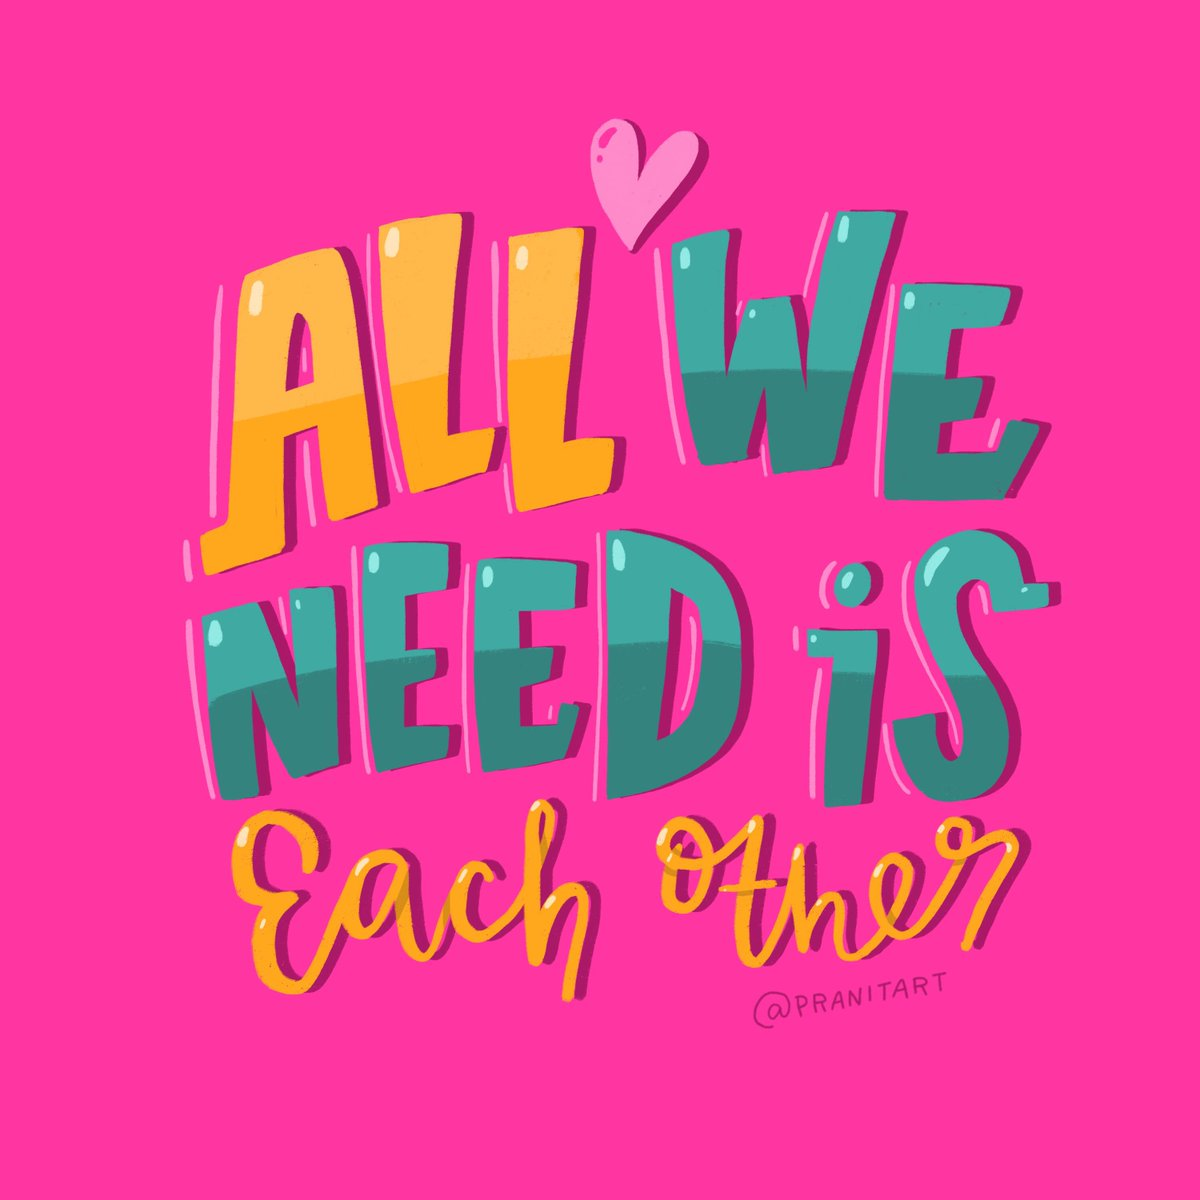 Amidst all the #metoo stories - all we really need is each other. I hope you have a good Monday! #WeAreAllInThisTogether #StayStrong . . . . . . #1416 #pranitasdrawingaday #type #goodtypetuesday #illustrationartist #lettering #handlettering #handmadetype #postcards #thegridlife